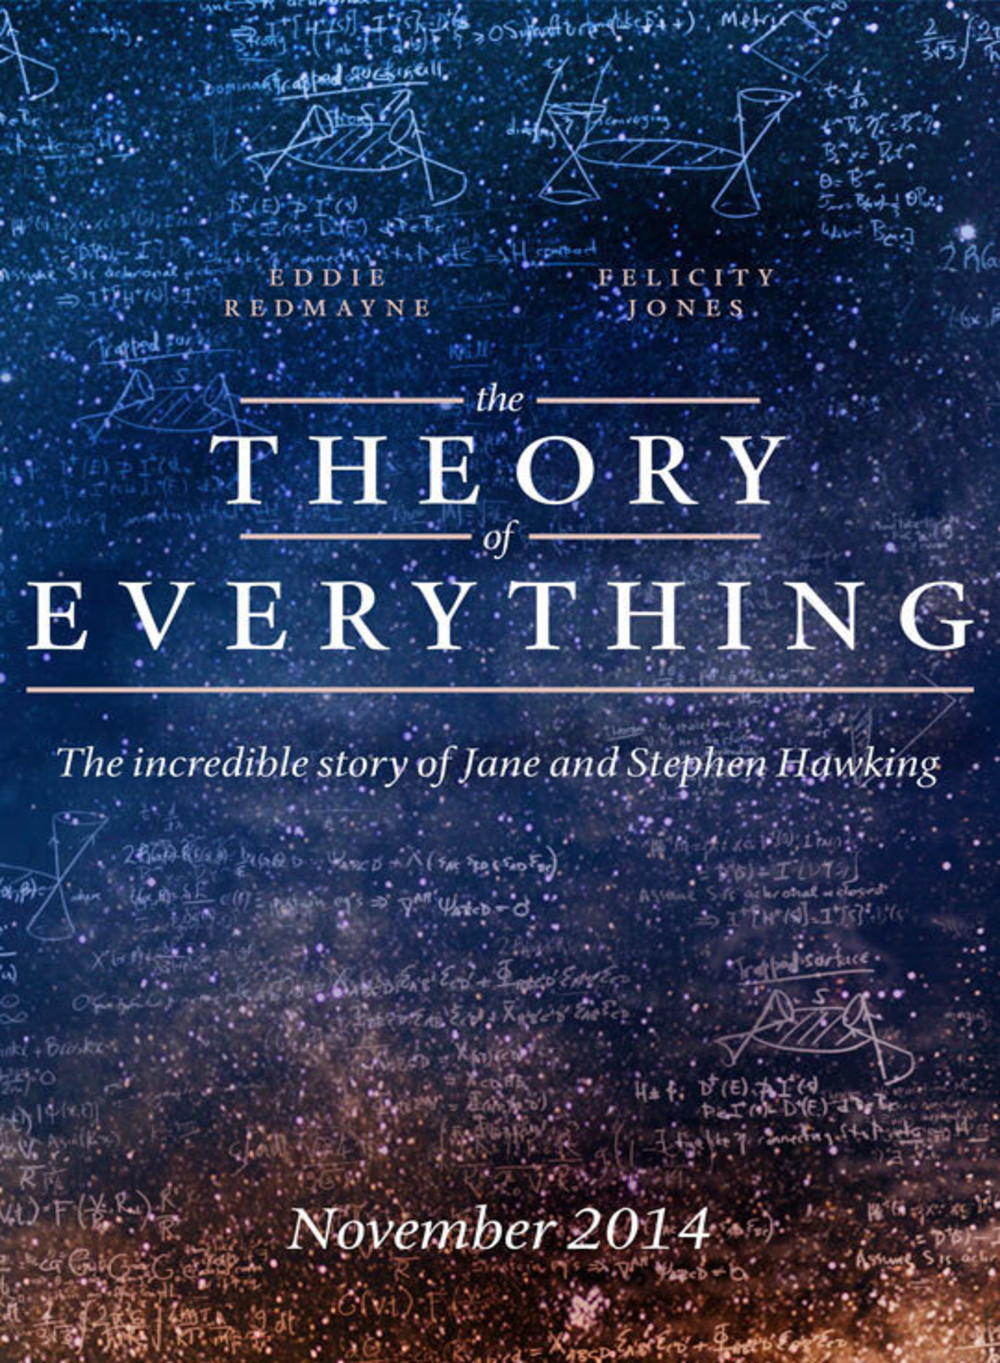 Download Wallpaper Movie The Theory Everything - tumblr_nif3kjny0d1tp1soio6_1280  Collection_698488.jpg